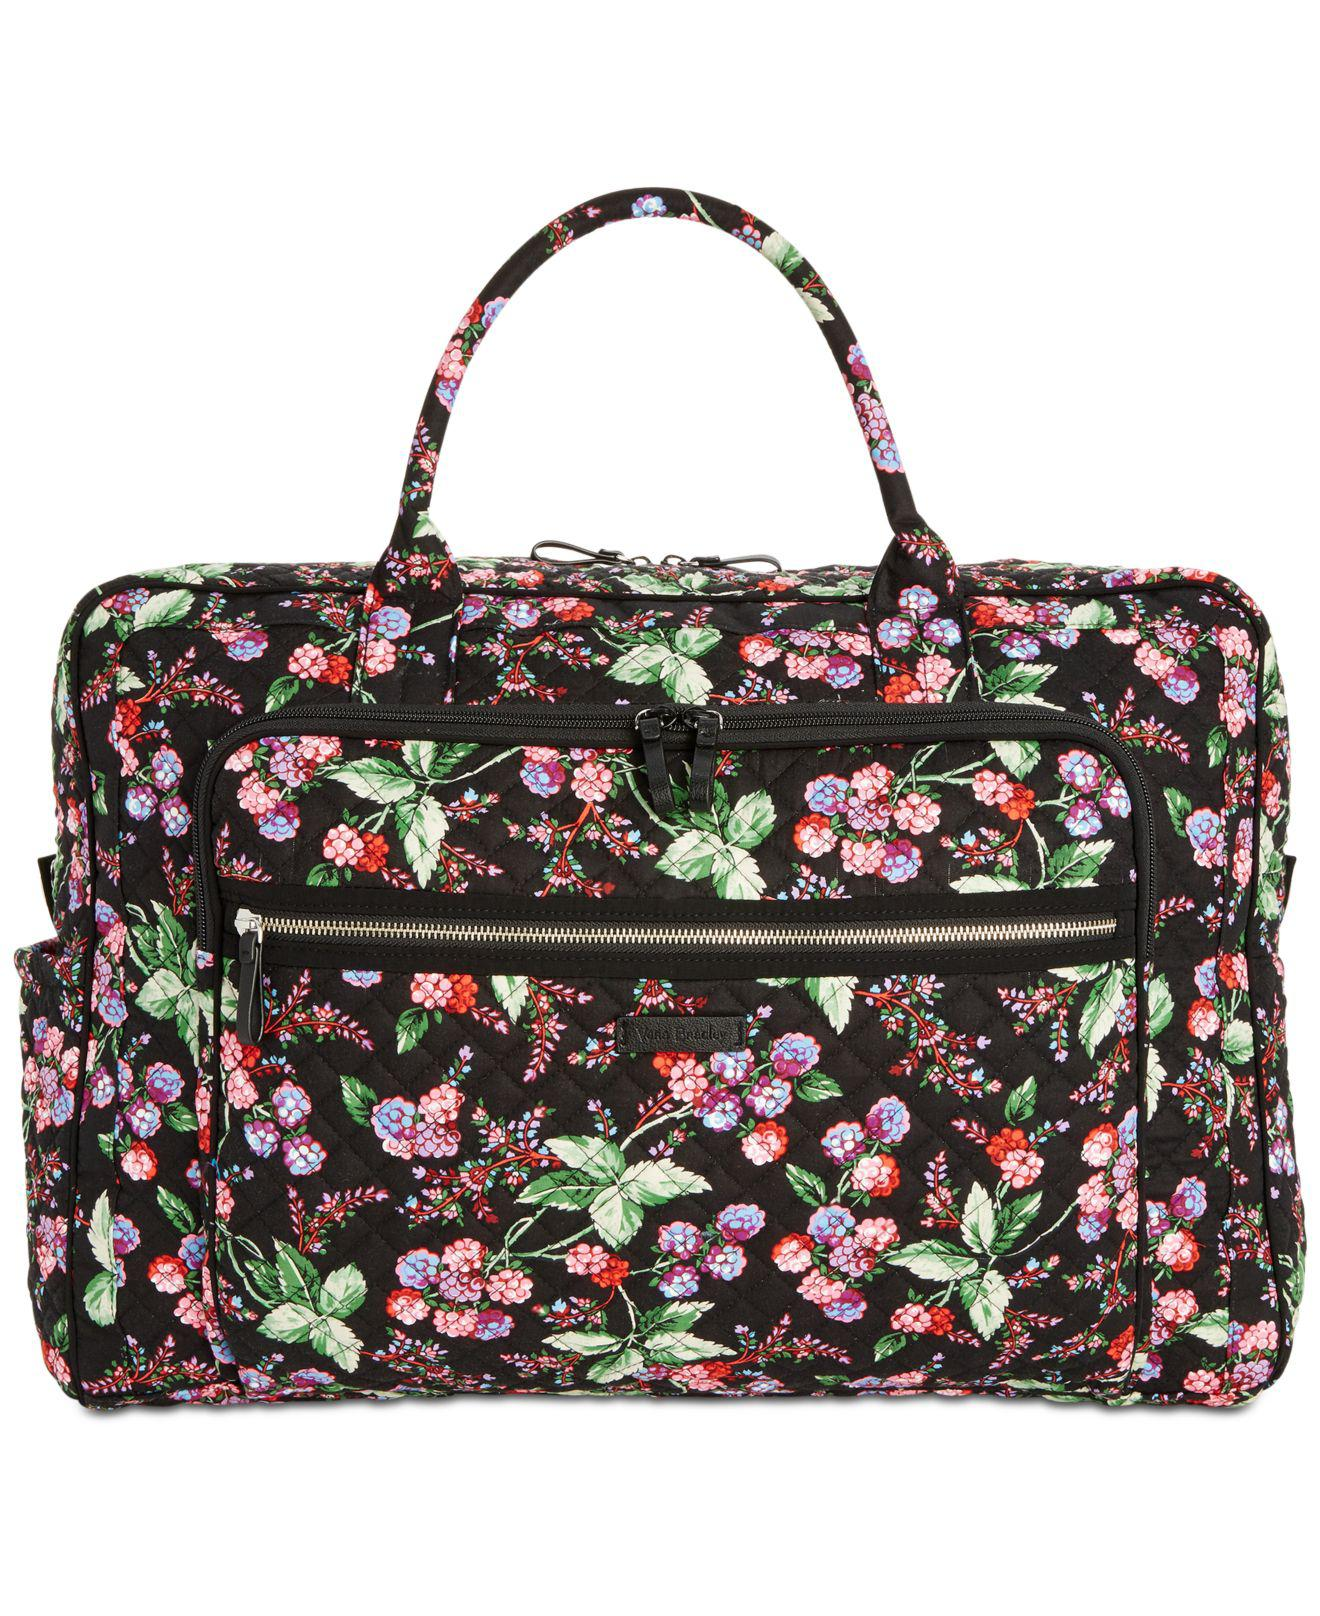 b35148236012 Gallery. Previously sold at  Macy s · Women s Weekend Bags ...